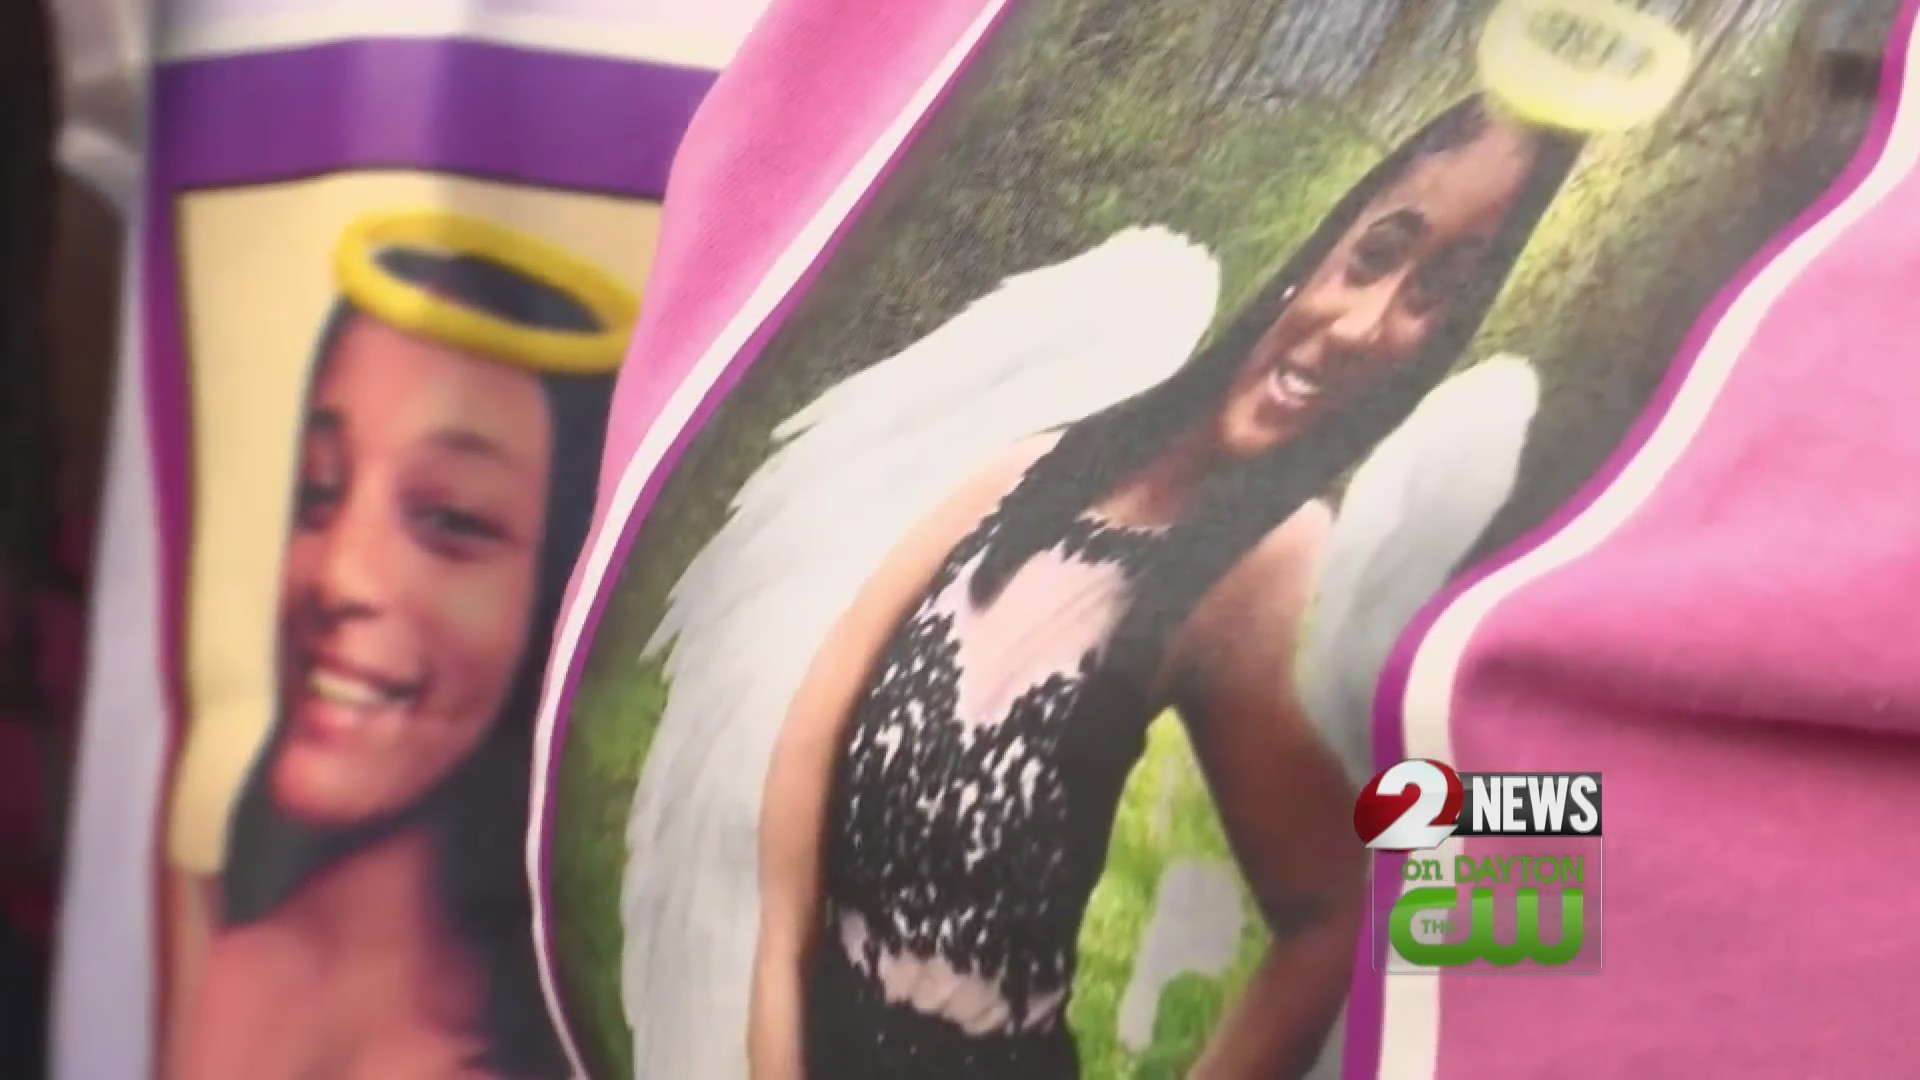 Teen crash victim to remembered as 15 forever